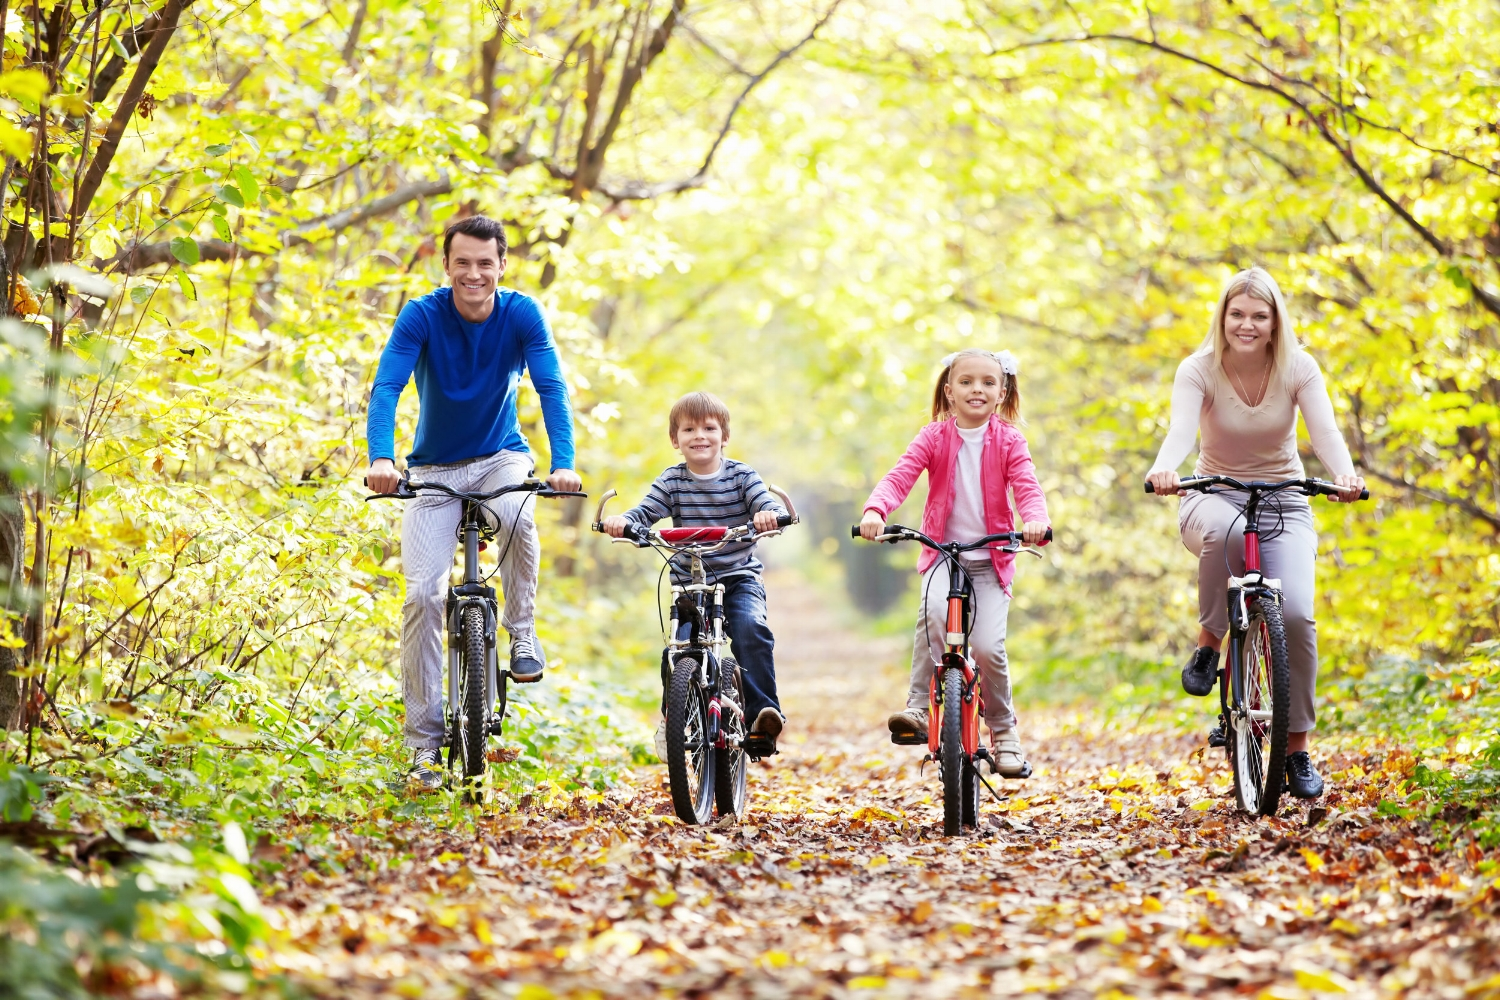 family park on bicycles in the fall